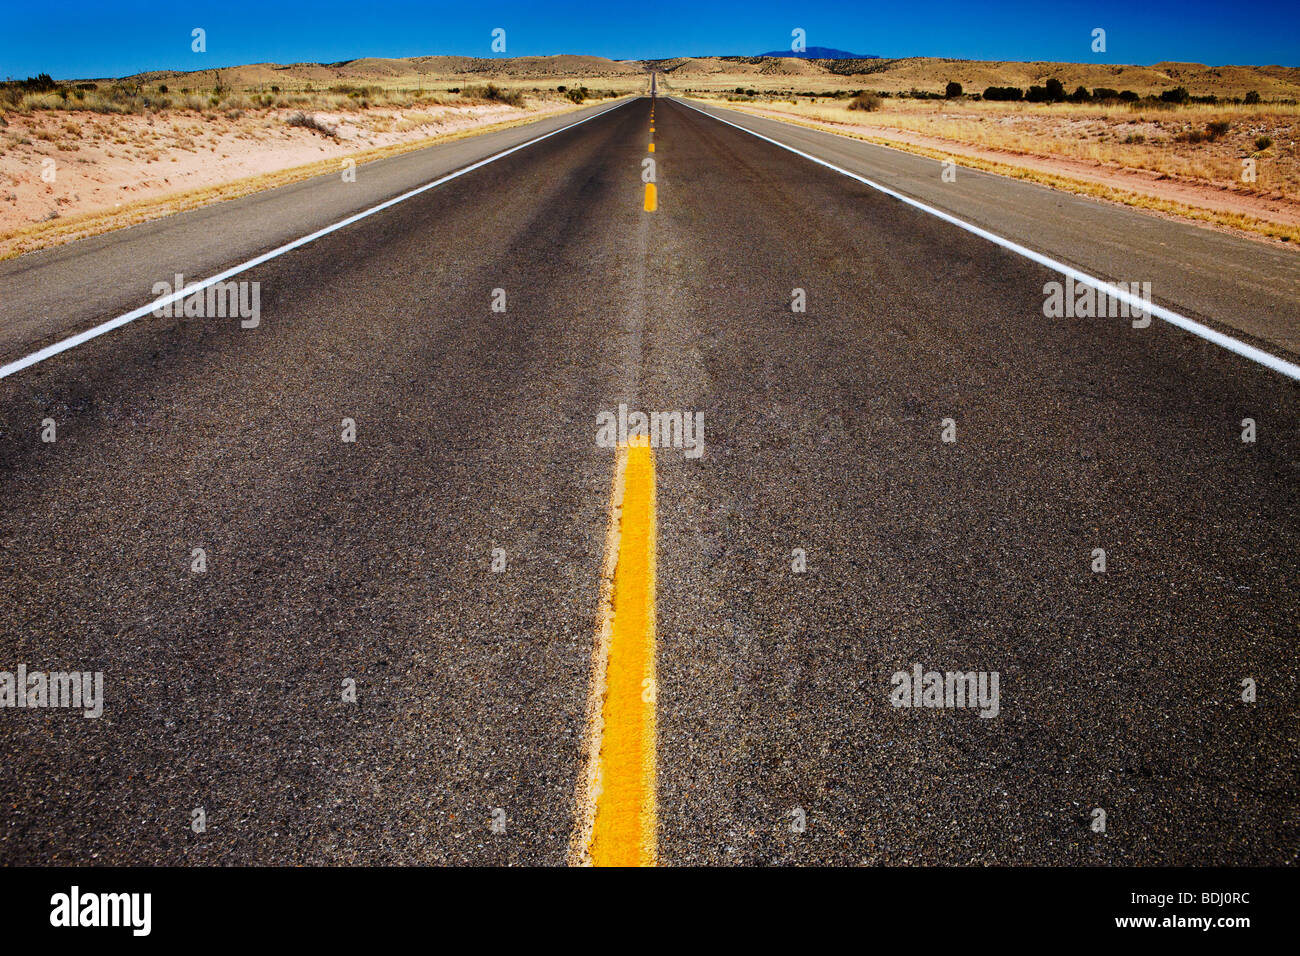 straight road running to a vanishing point against a blue sky - Stock Image